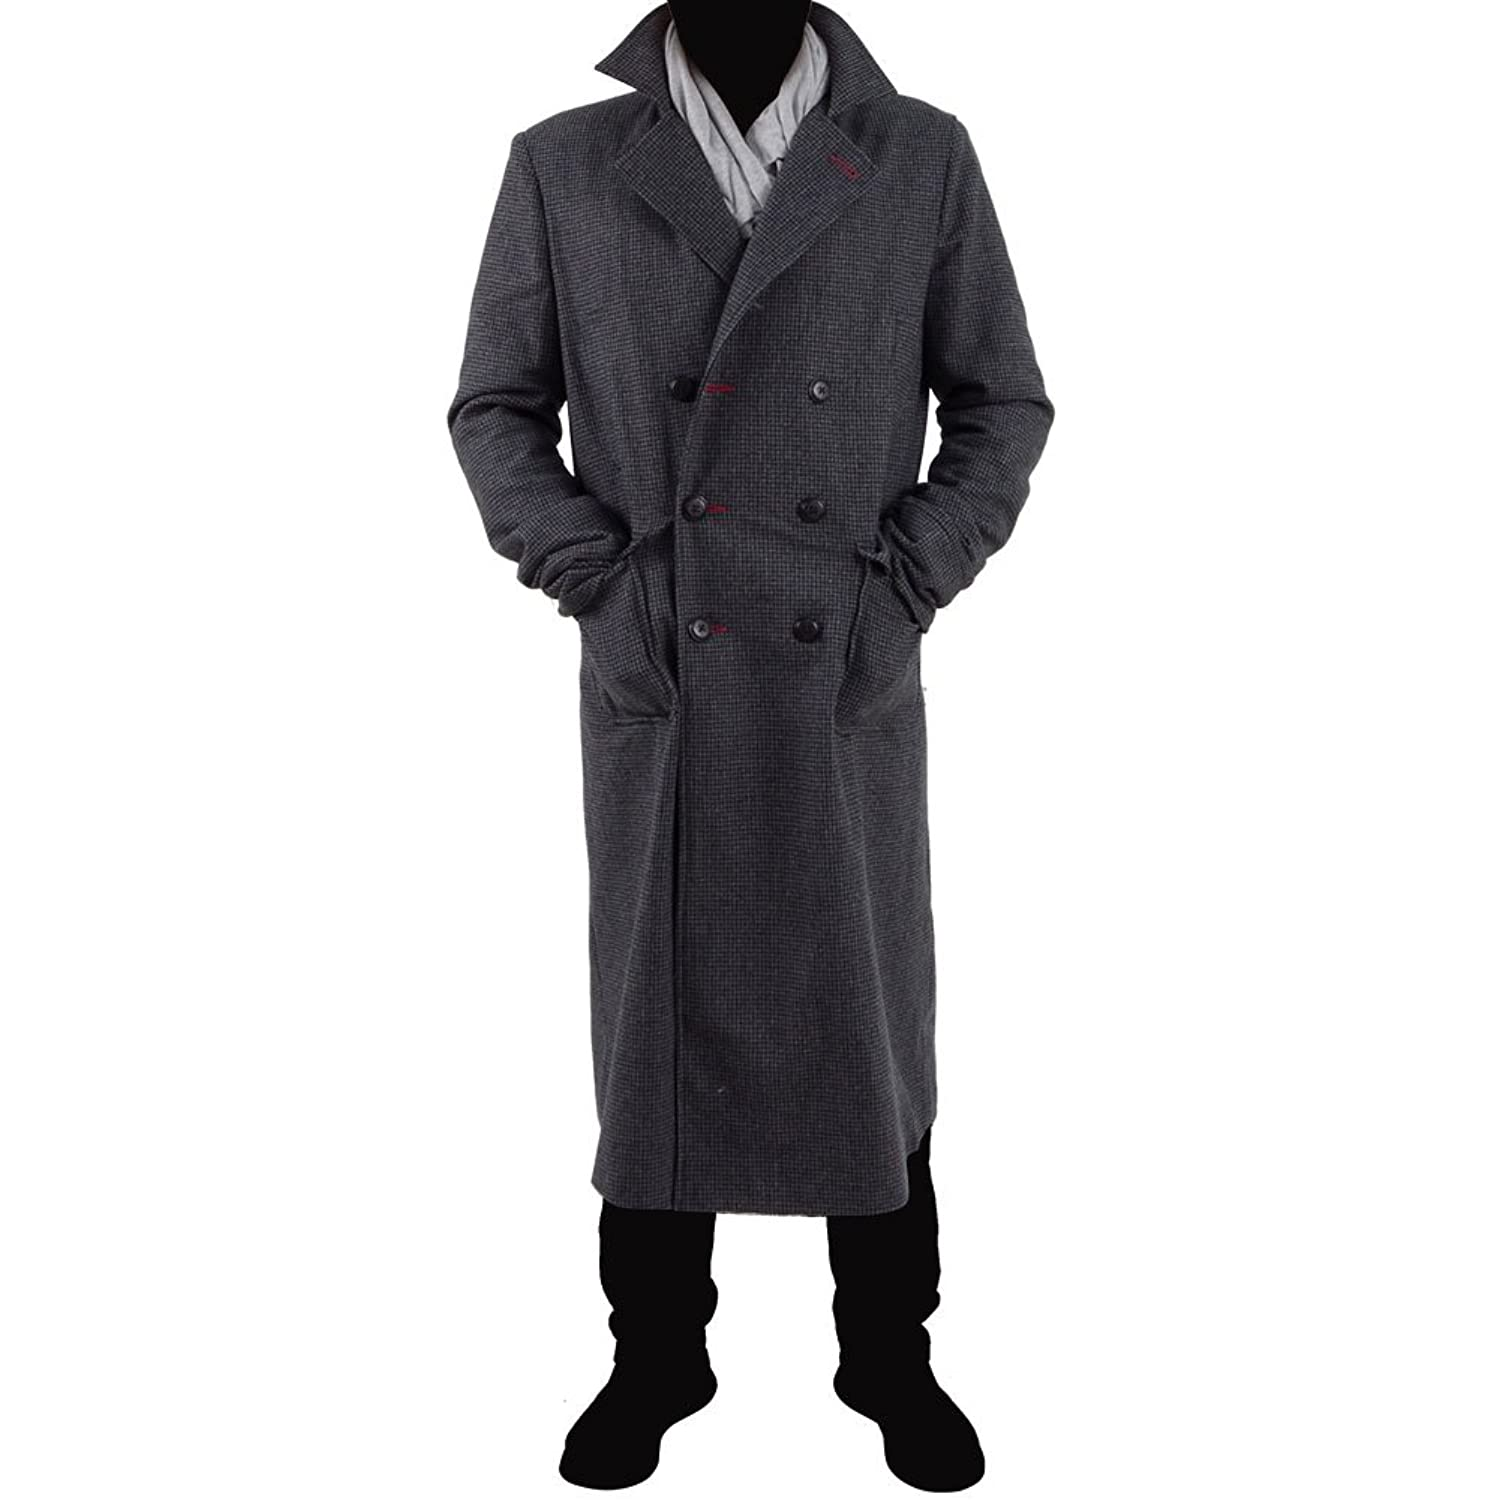 1950s Men's Clothing Mens Plaids And Tweeds Long Trench Coat Halloween Cosplay Costume Overcoat $100.00 AT vintagedancer.com